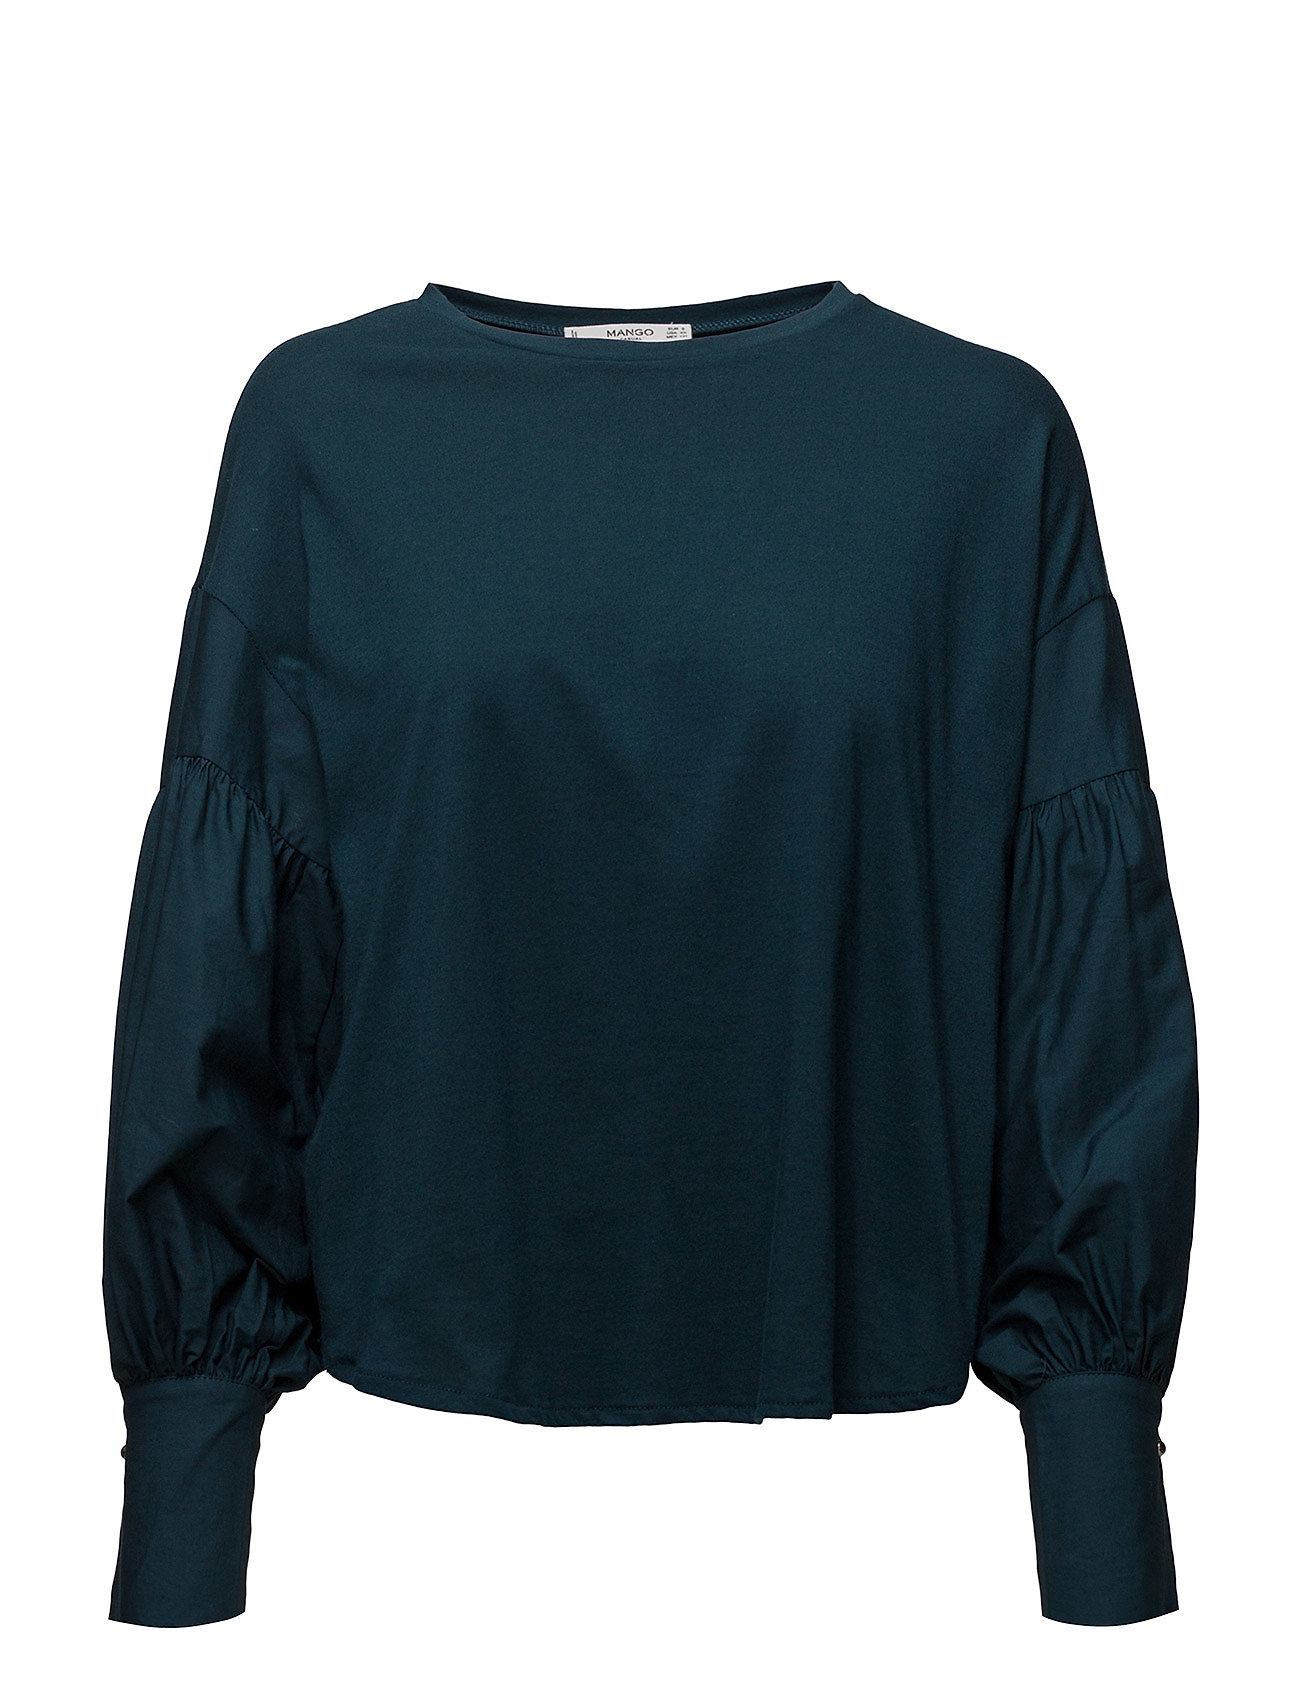 Image of Puffed Sleeves T-Shirt (2804147969)